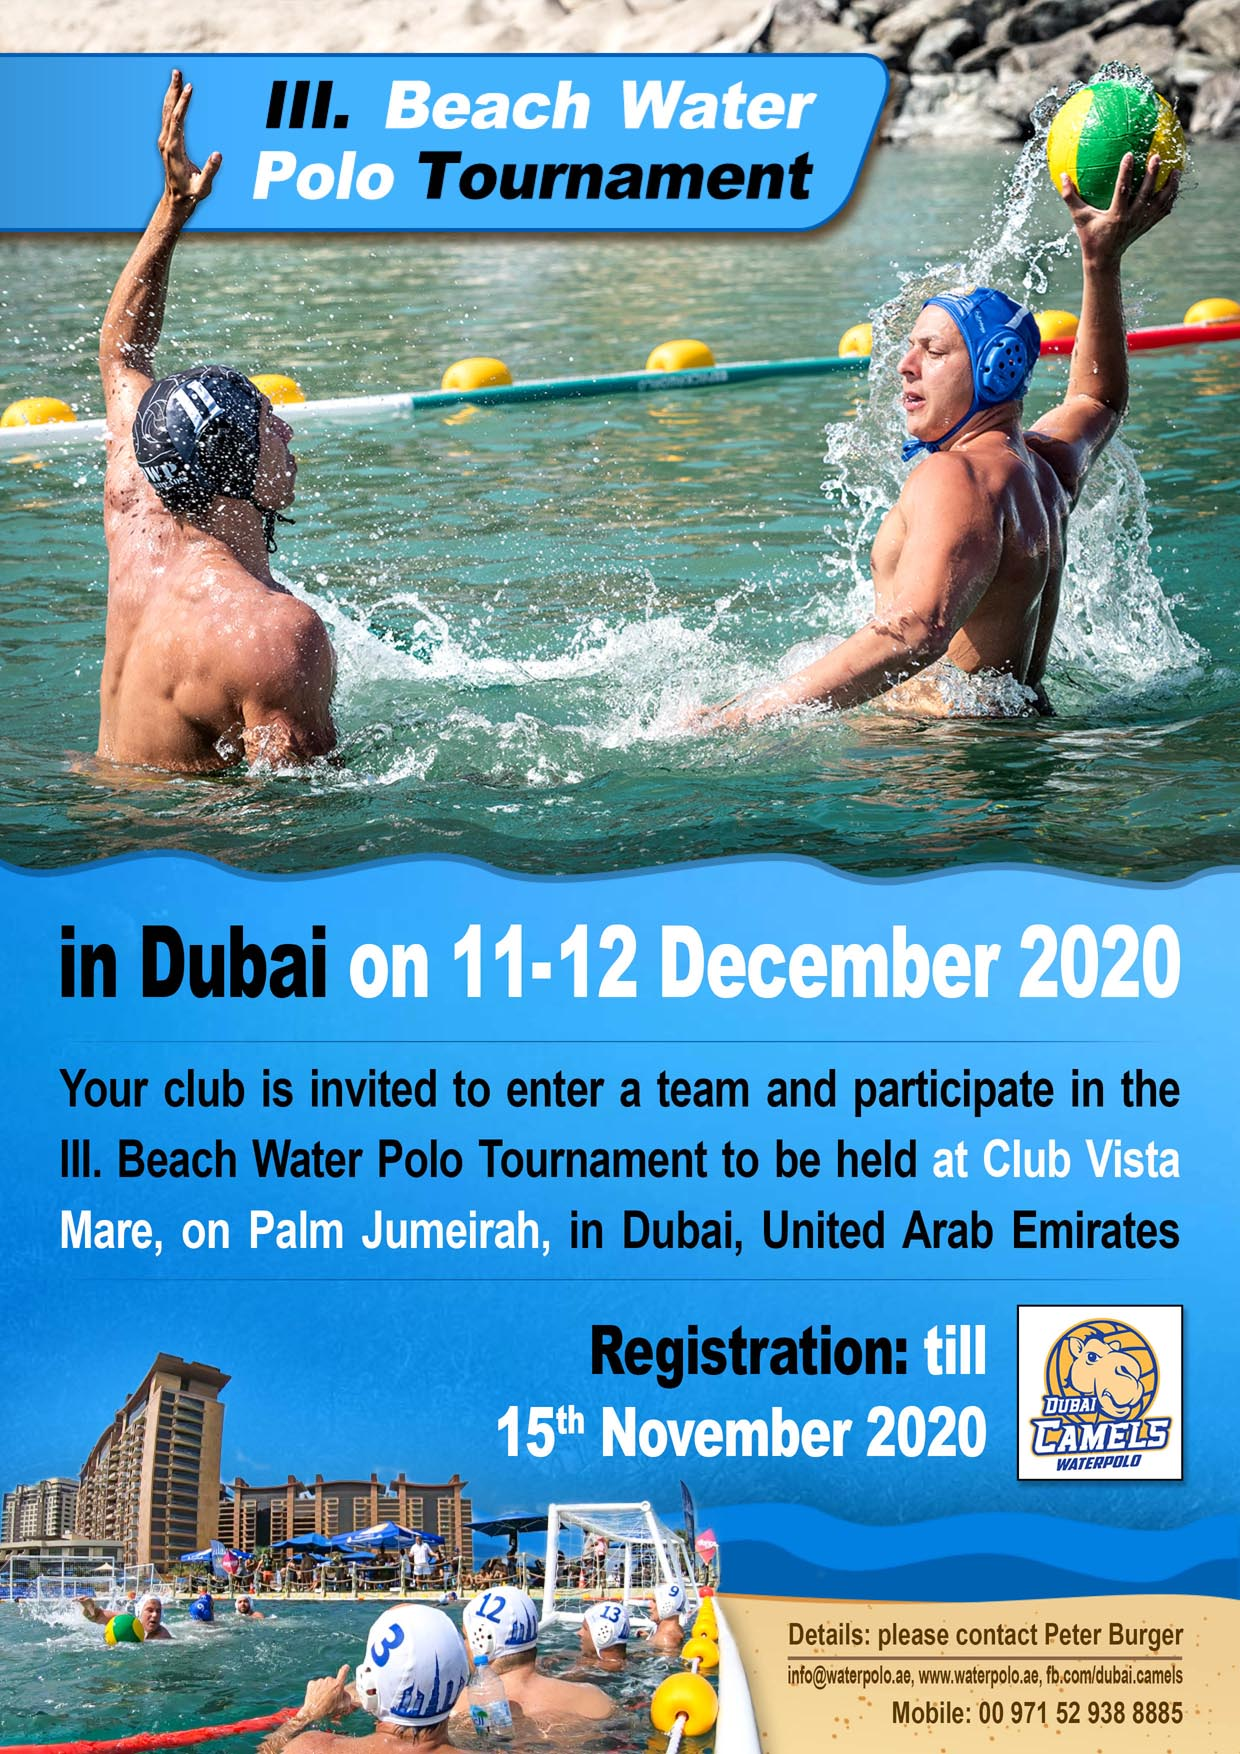 Beach Water Polo Tournament 11-12 December 2020